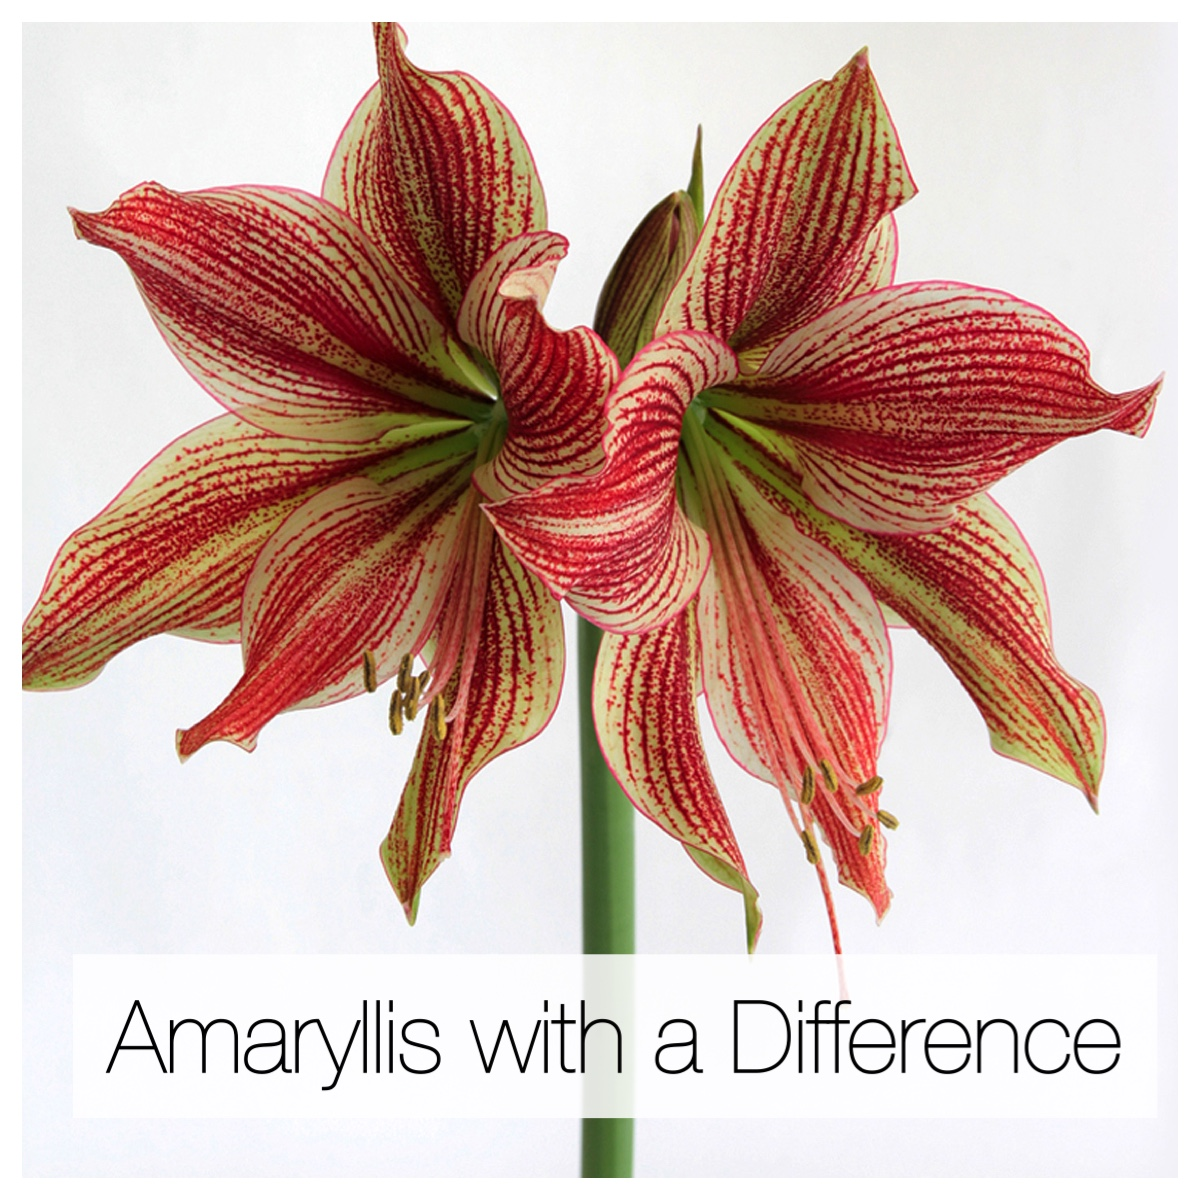 Amaryllis With a Difference: Unusual Colors and Flower Styles